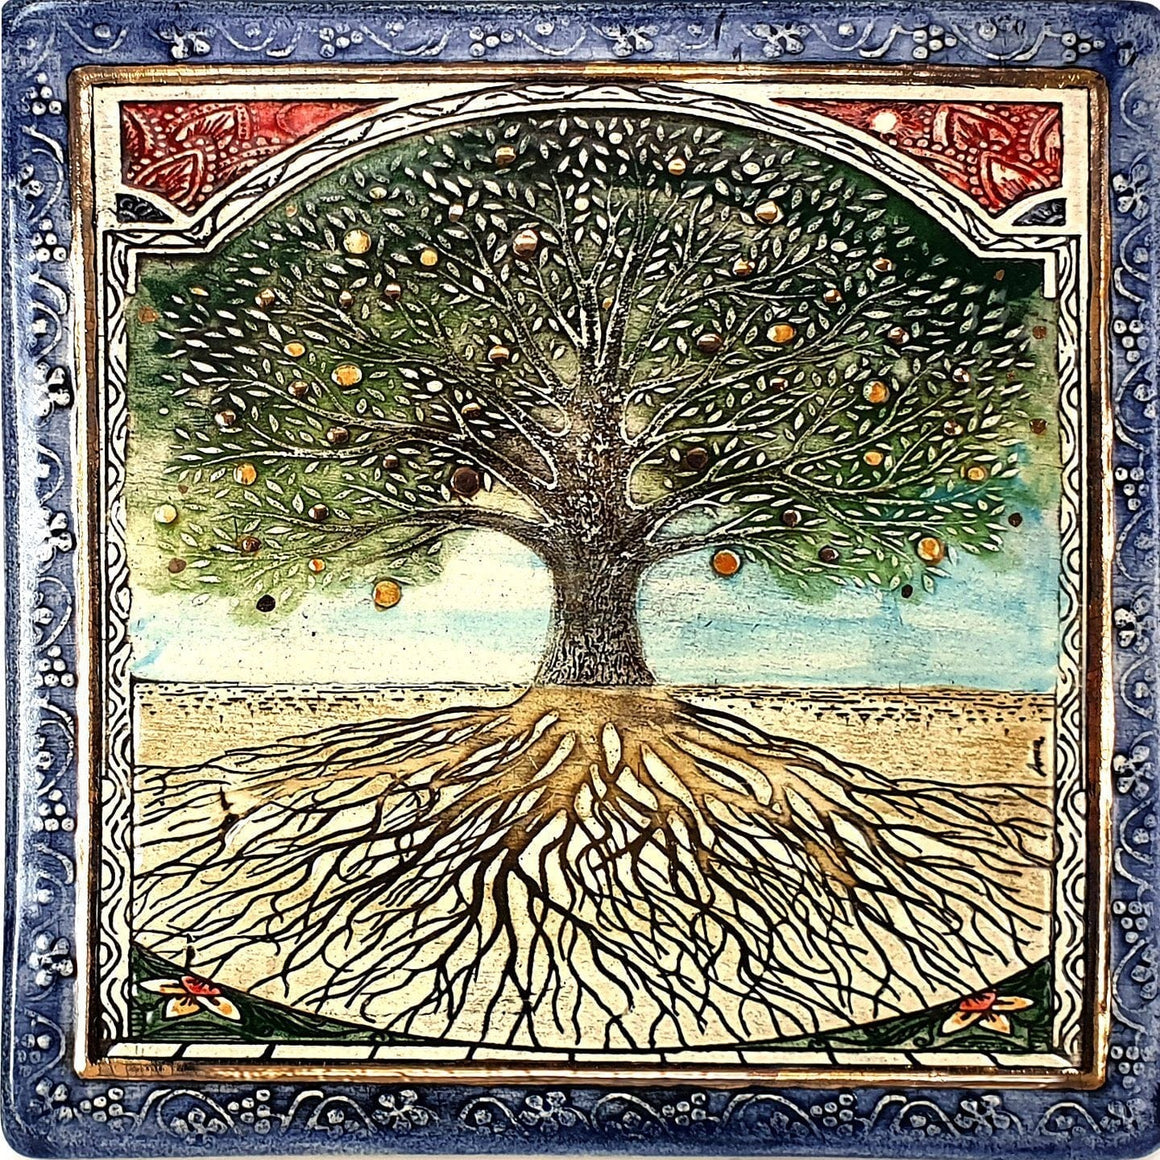 Tree Of Life Handmade Ceramic Wall Plaque Amazing Art Big Plaque 19*19cm 24k Gold Ornaments